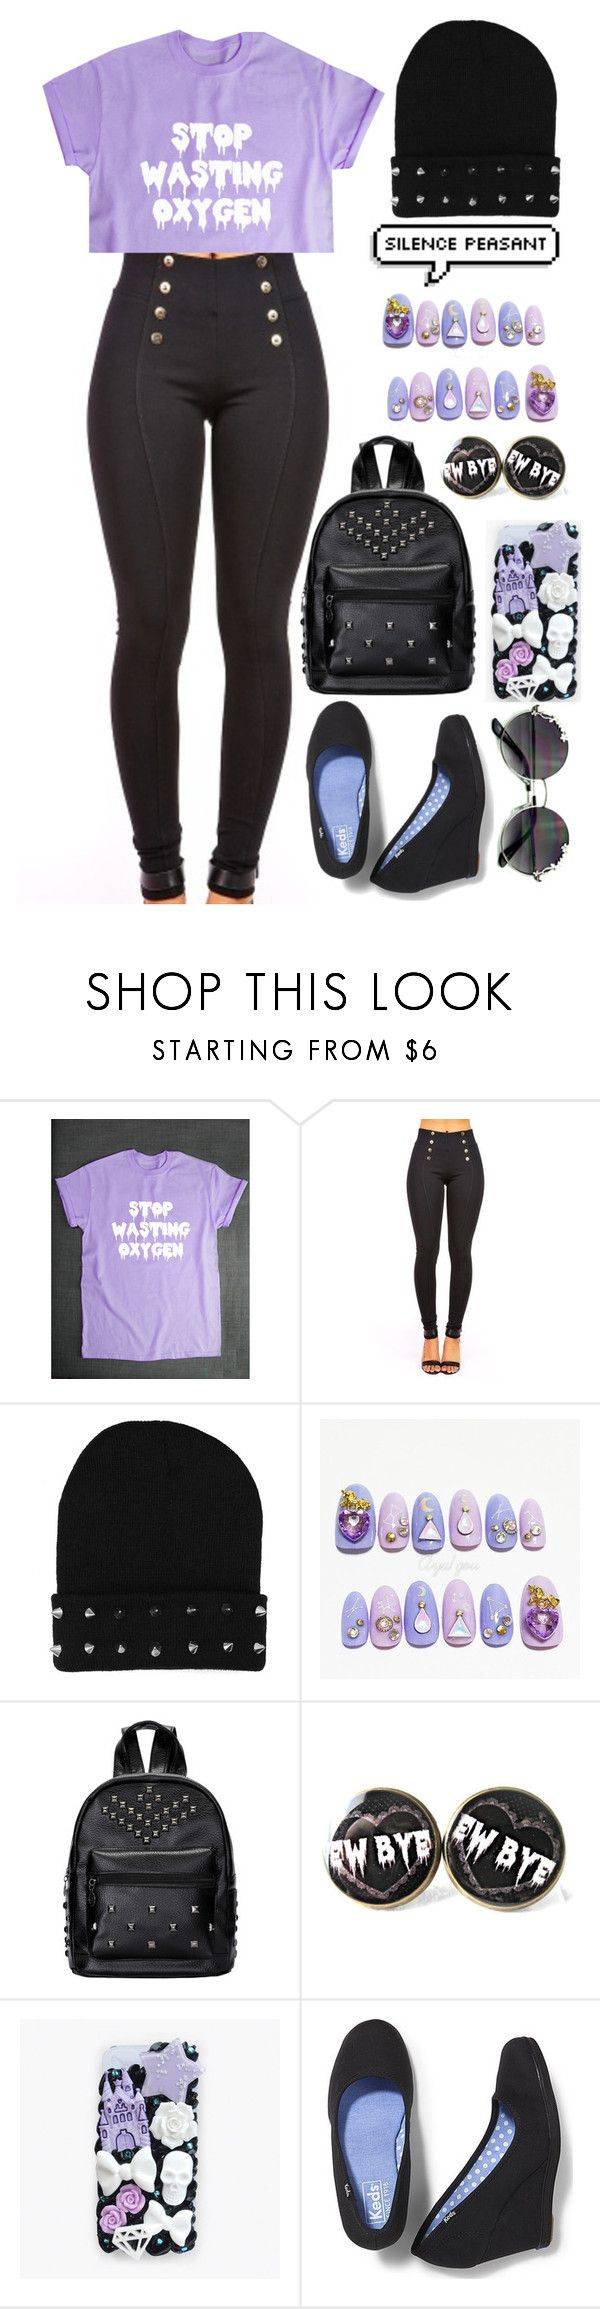 """School: Pastel Goth"" by cherry-demon ❤ liked on Polyvore featuring cutekawaii and Keds"